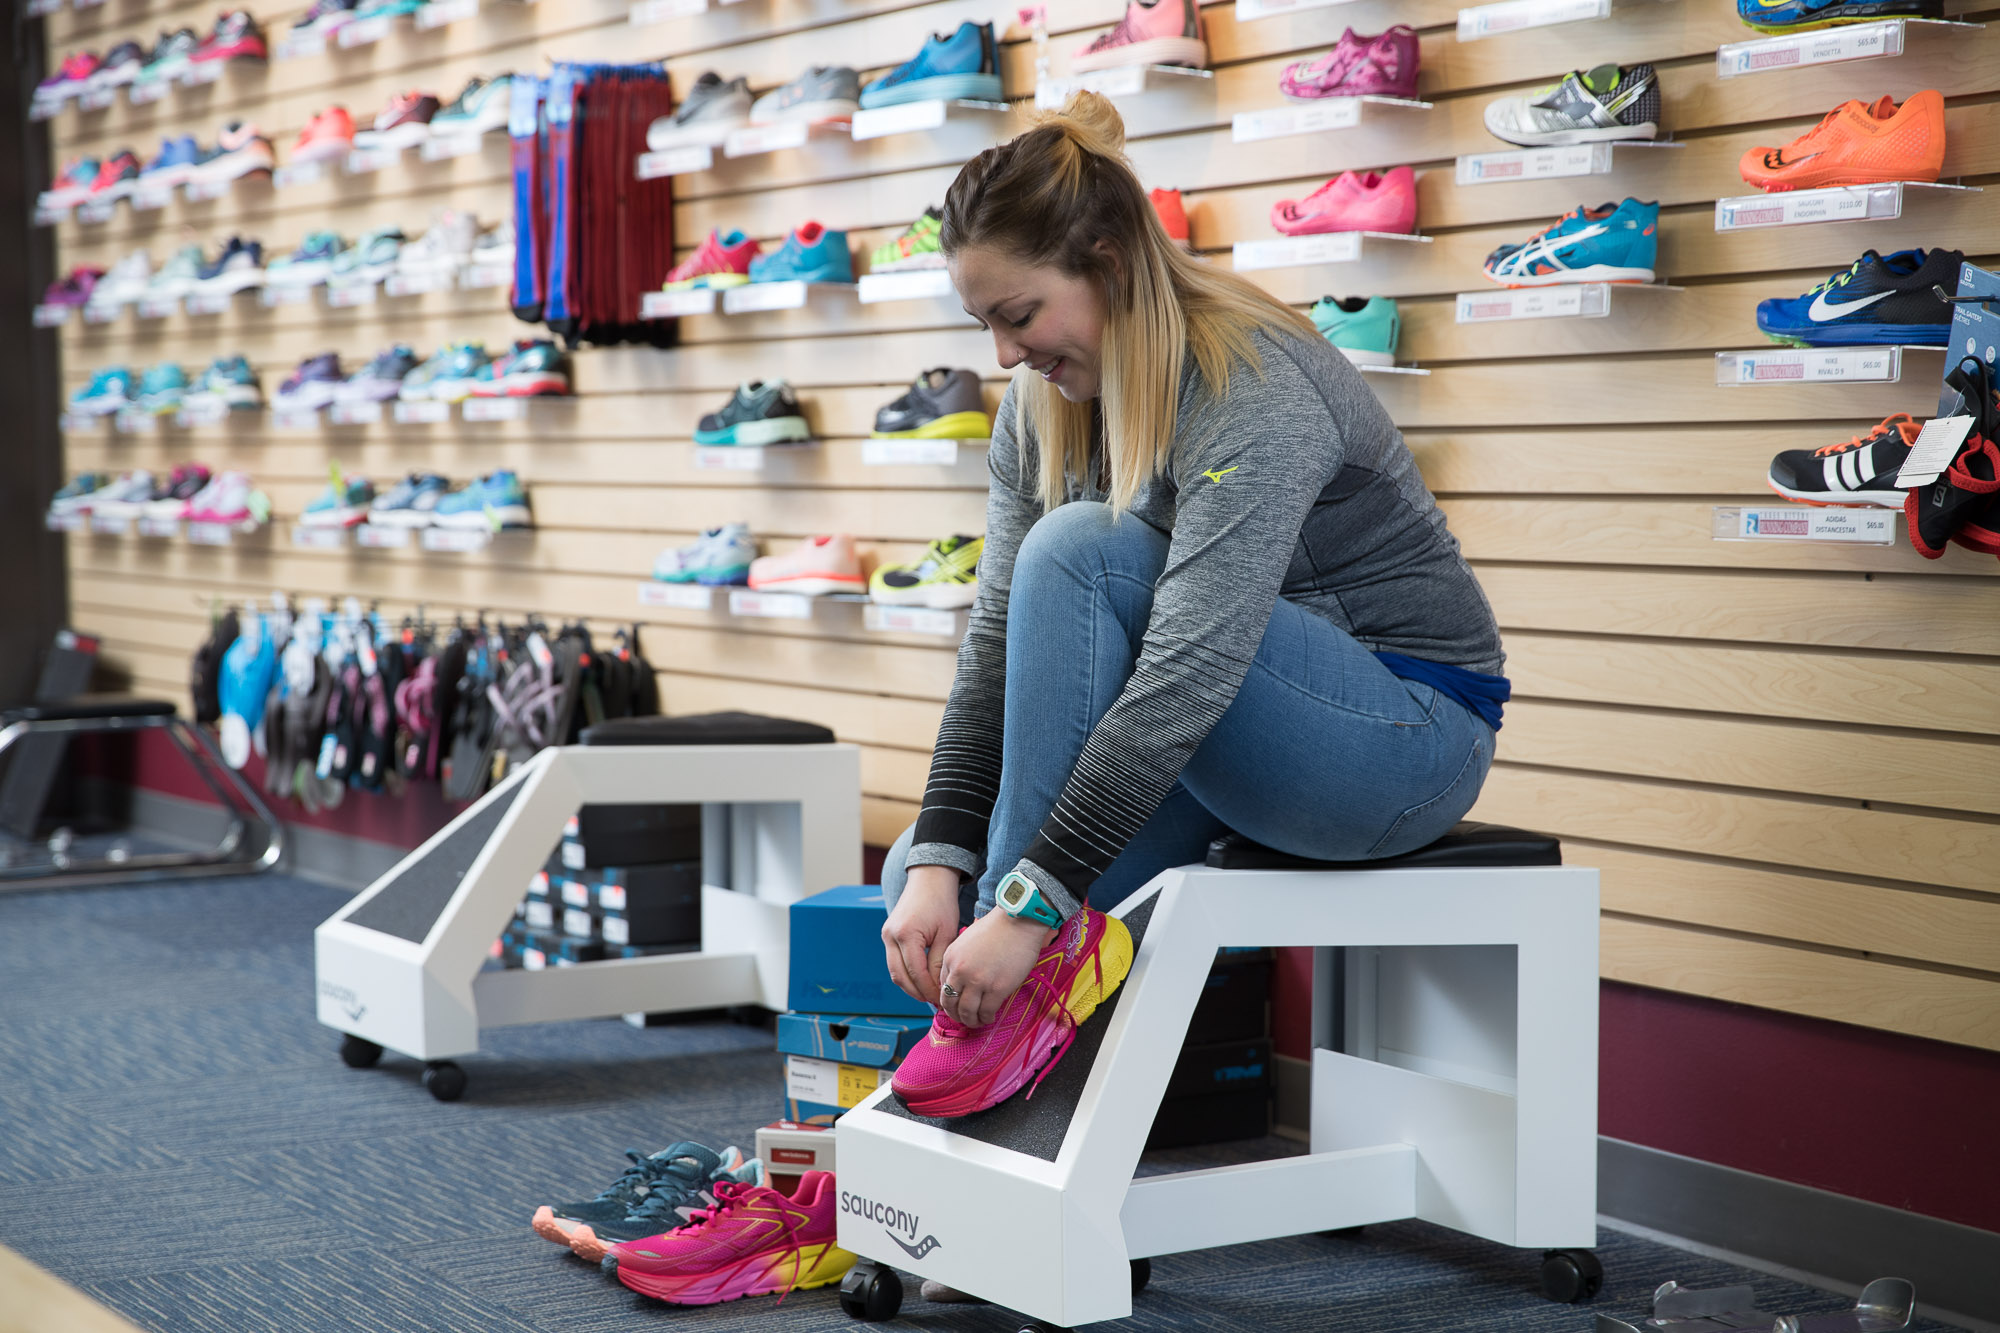 A young girl tries on a pair of running tennis shoes from the 3Rivers Running Company in Fort Wayne.